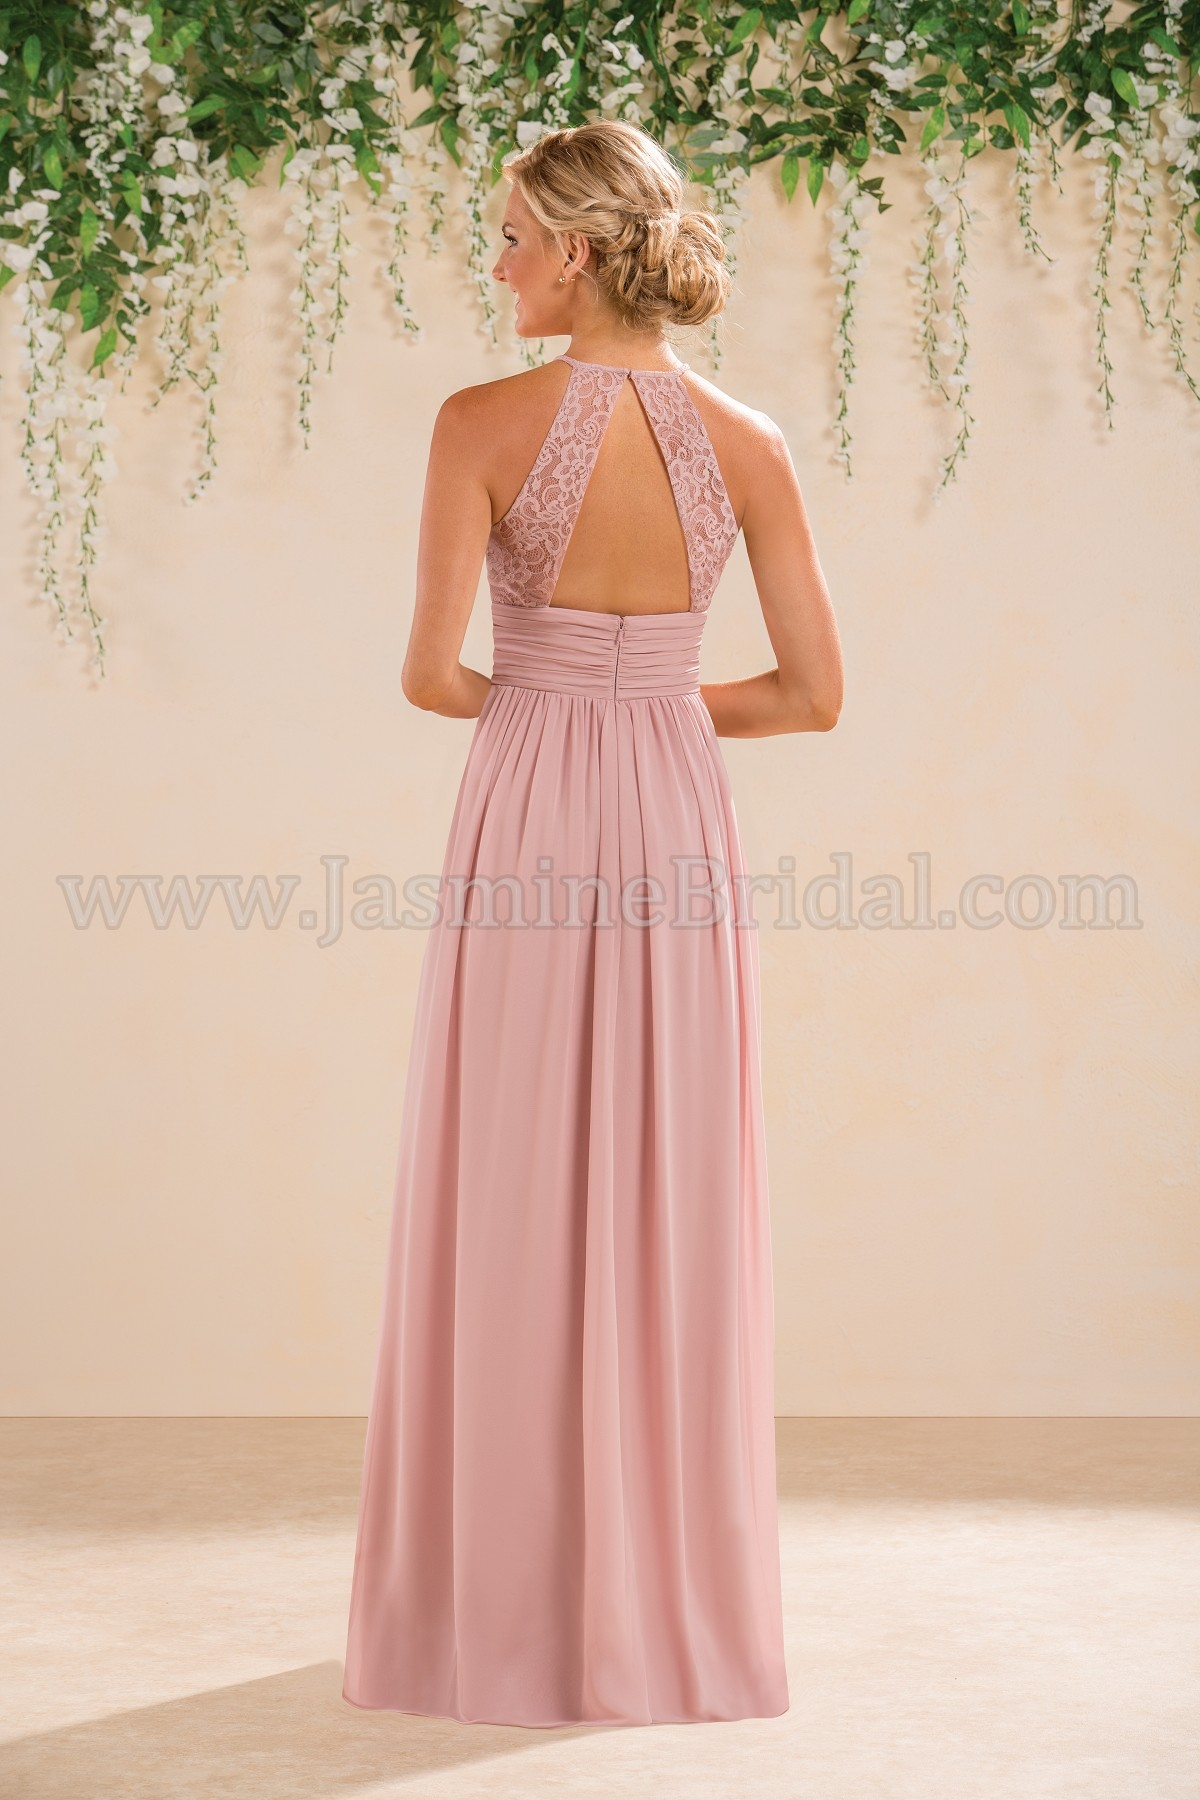 bridesmaid-dresses-B183016-B